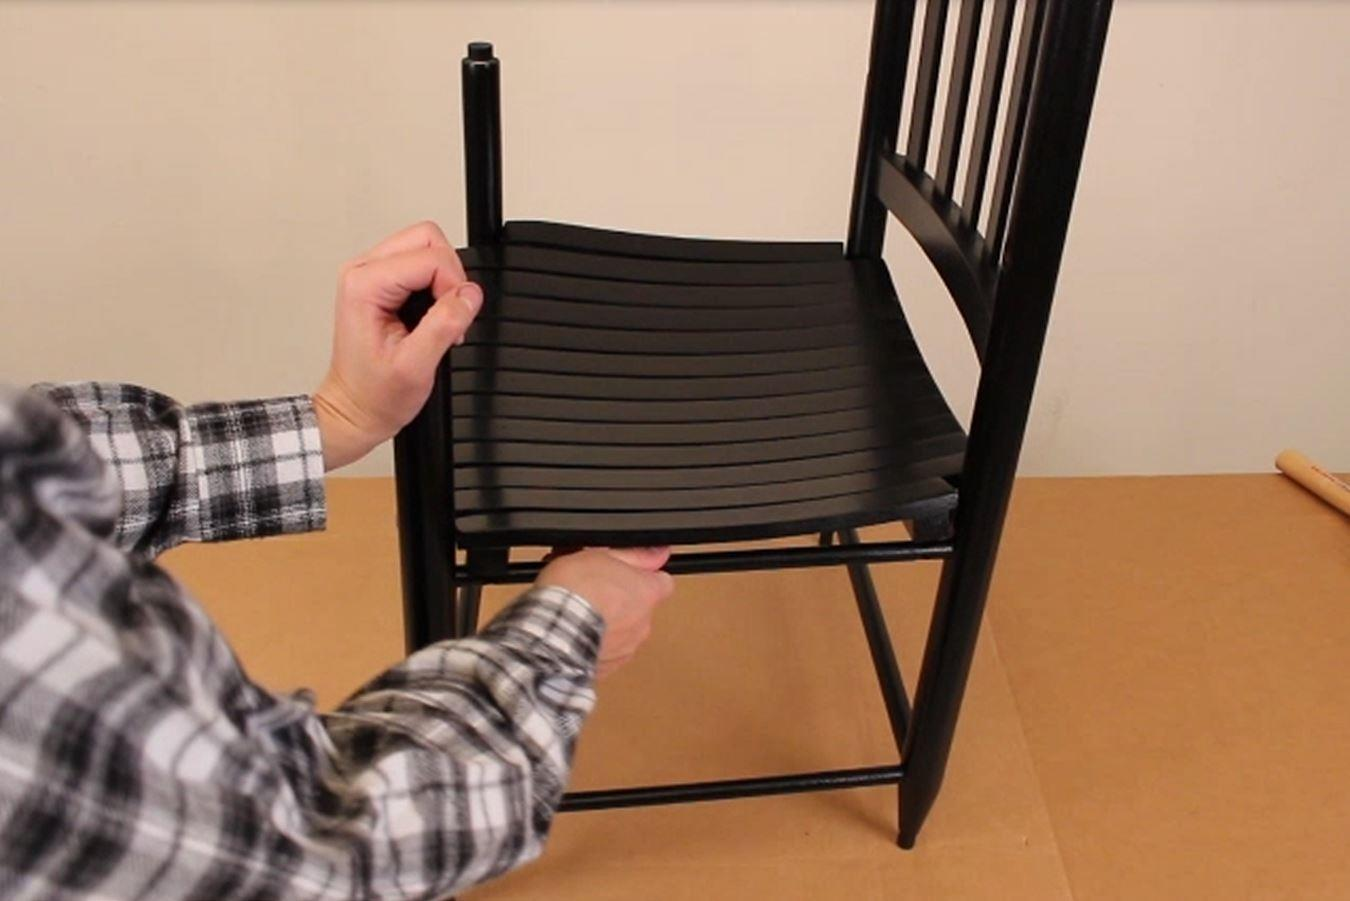 Chair Repair Parts From Splats To Rails Rocking Chair Parts Explained The